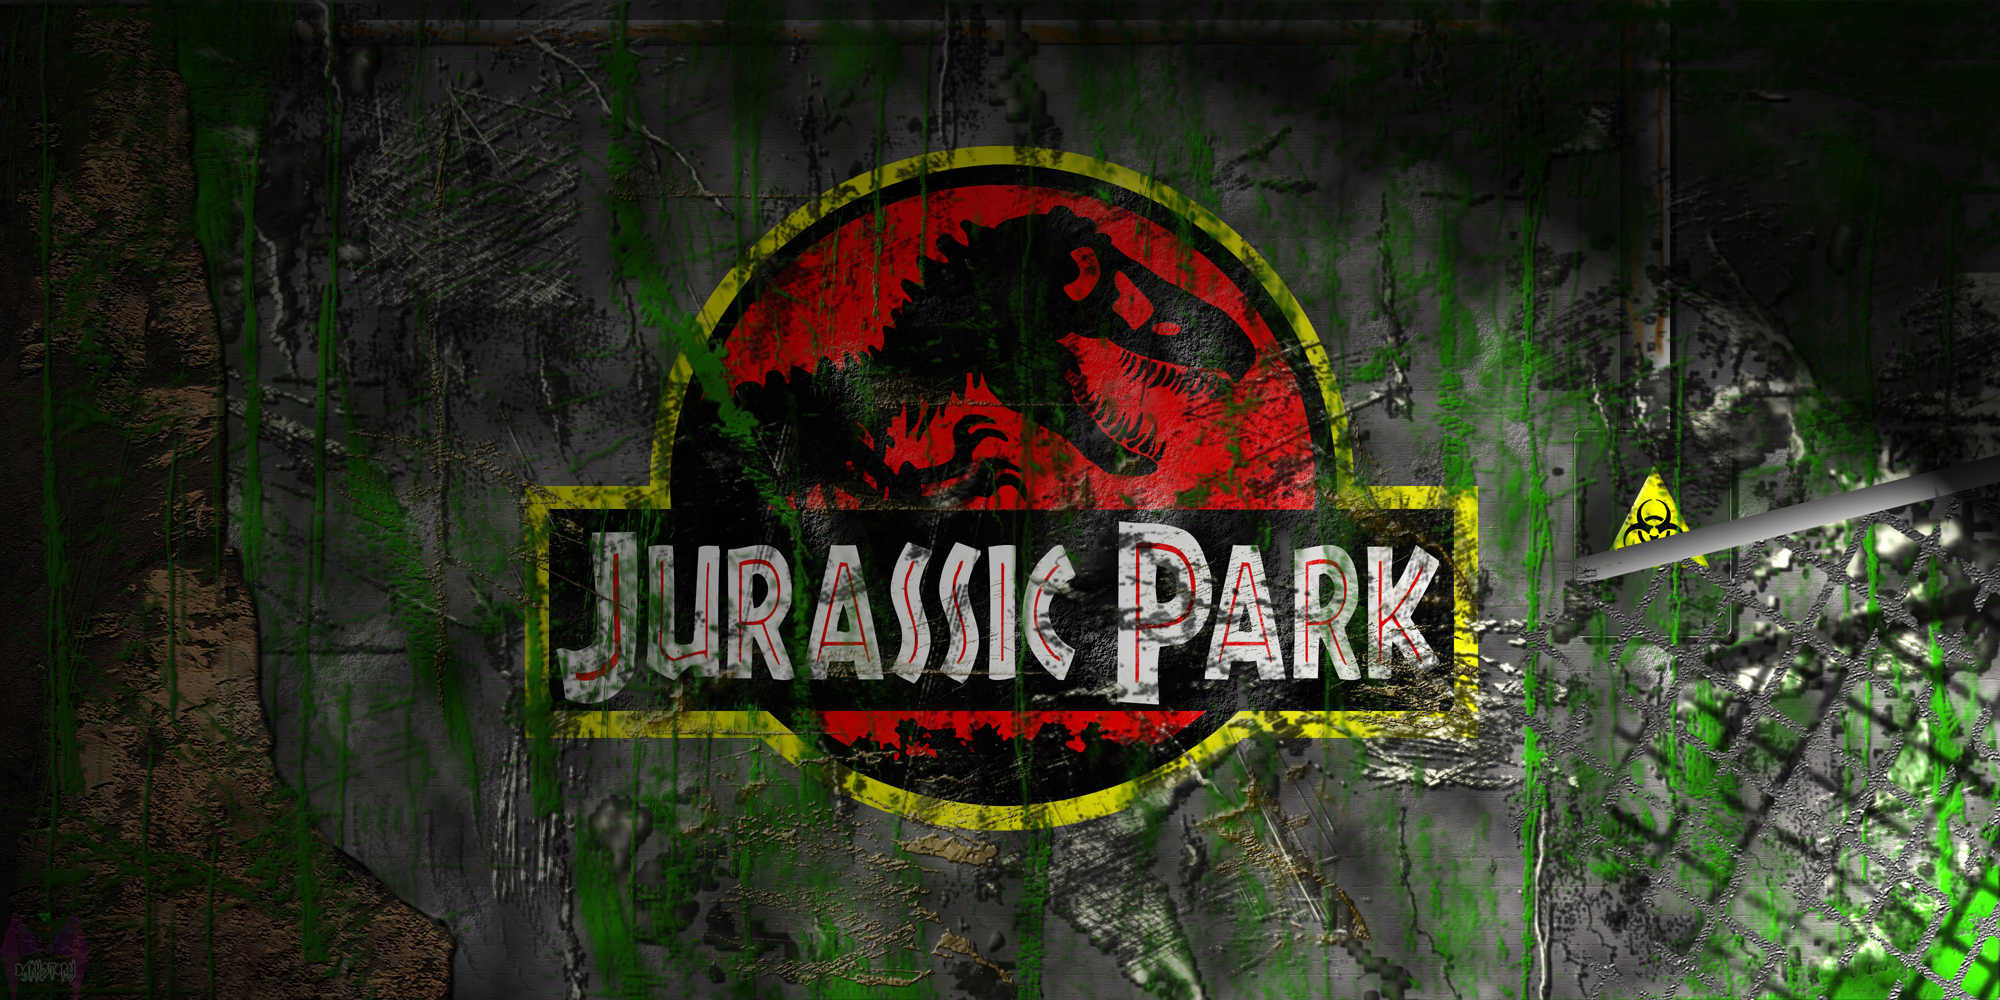 jurassic park latest pictures - photo #16